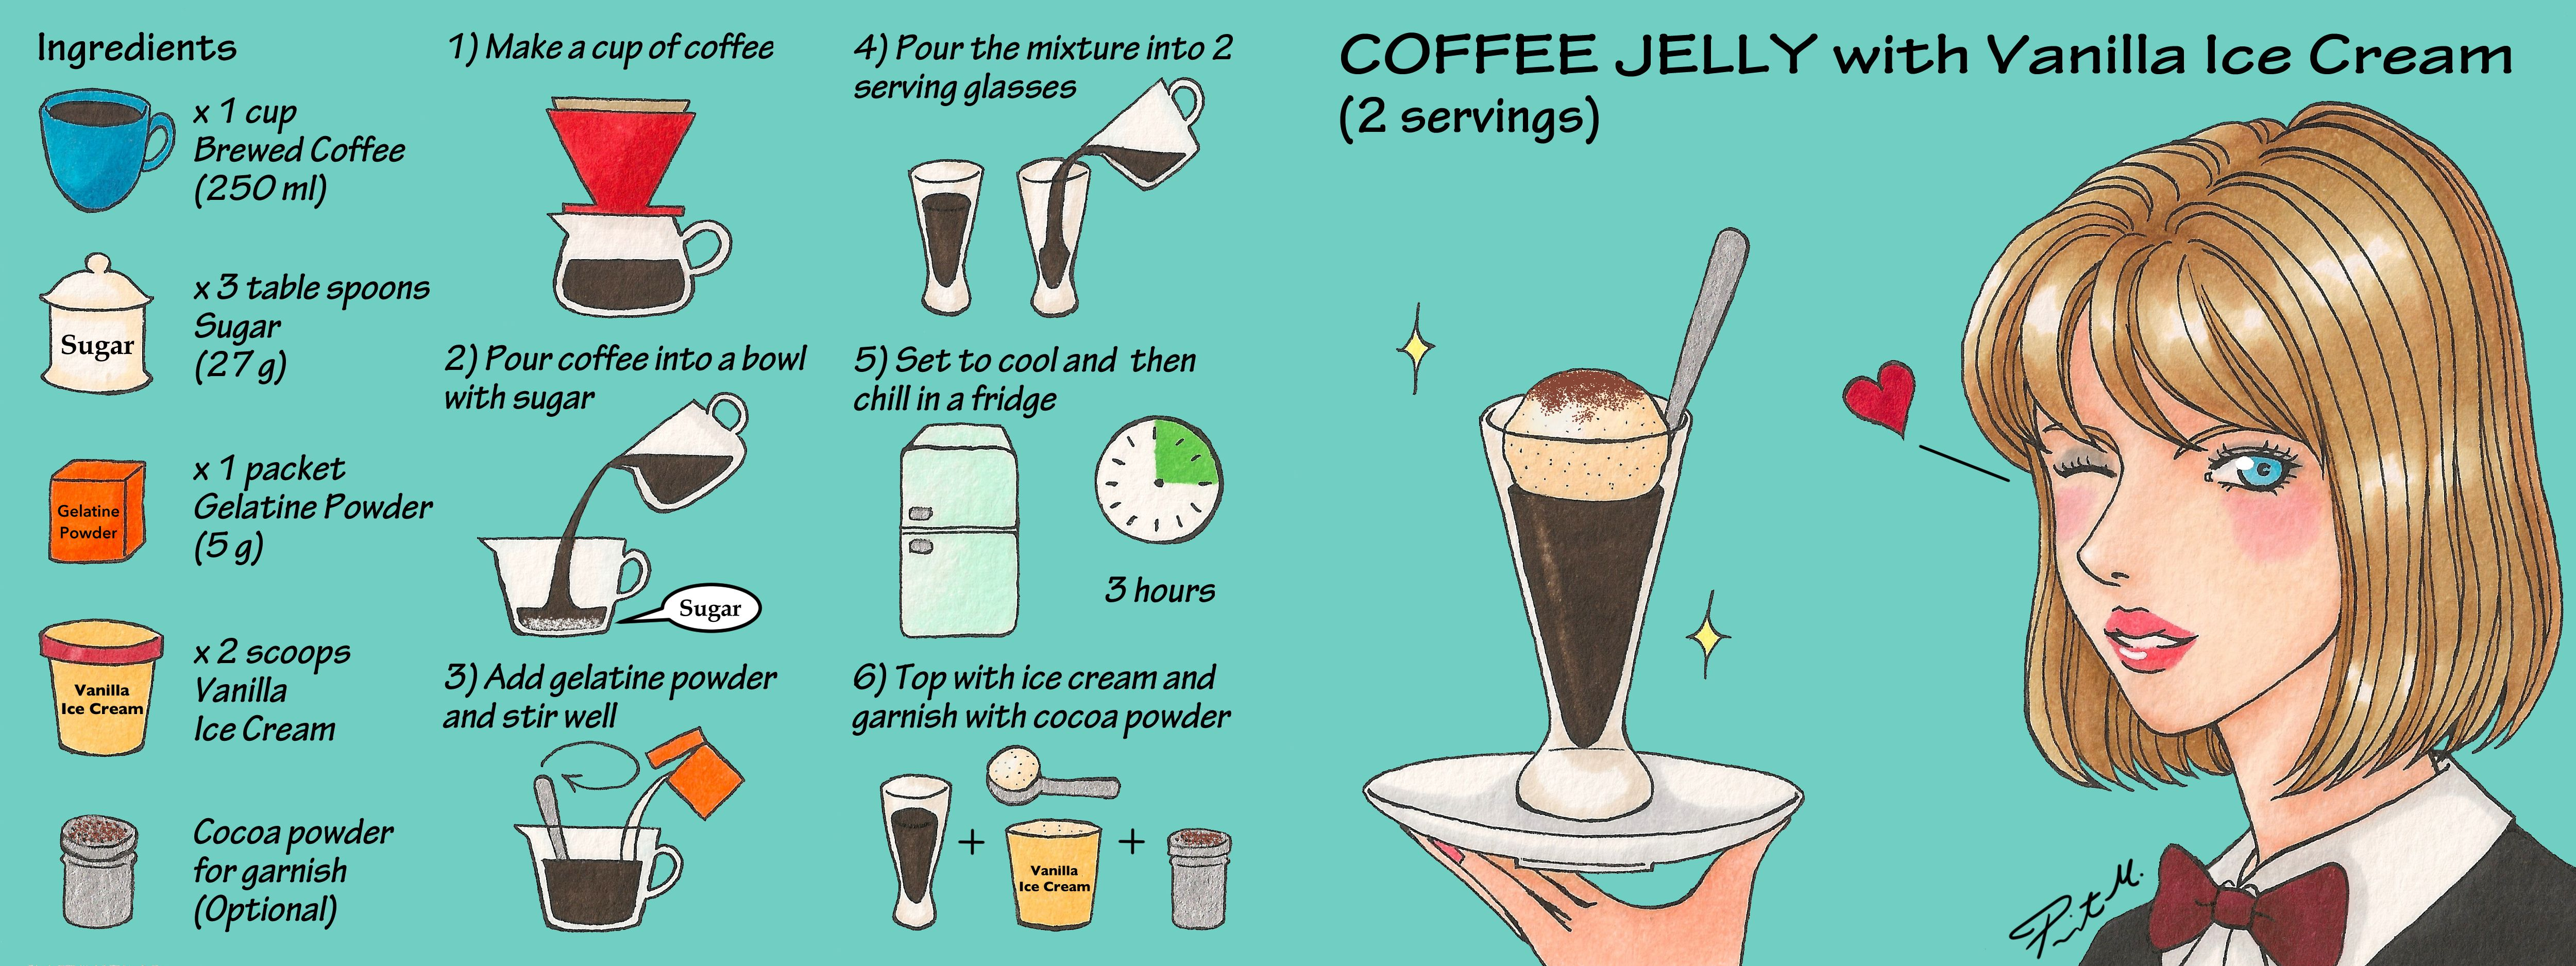 Great Tips If You Love Drinking Coffee! | Coffee jelly